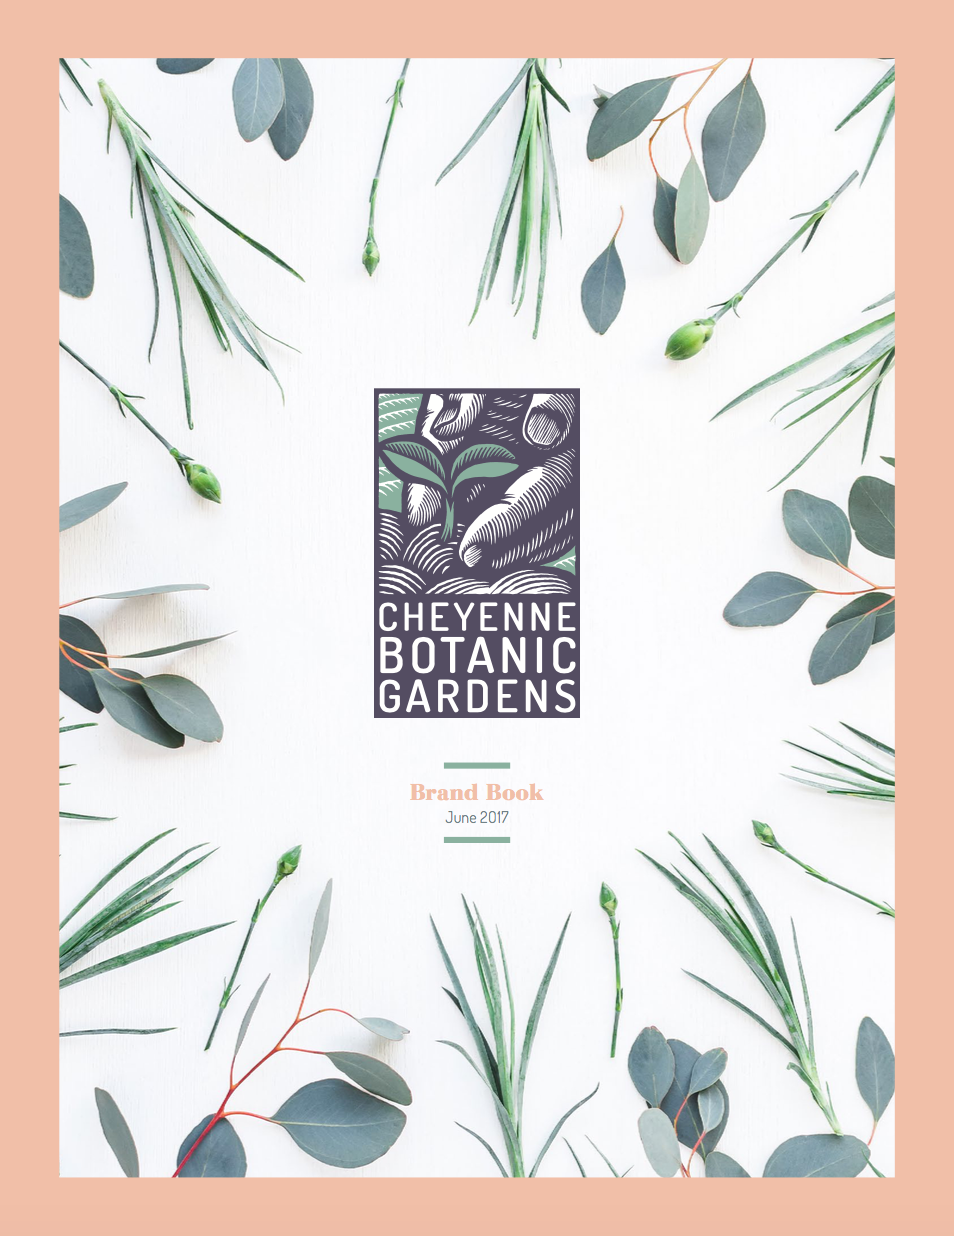 Cheyenne Botanic Gardens Brand Book - Role: Copywriter and Brand StrategistWhen the Cheyenne Botanic Gardensdecided to open their brand new Grand Conservatory, it became clear that a brand refresh was in order.The client asked us to produce a brand book to guide them in their marketing endeavors, as well as a fresh purpose statement to ground them in coming months.Together, we landed on: